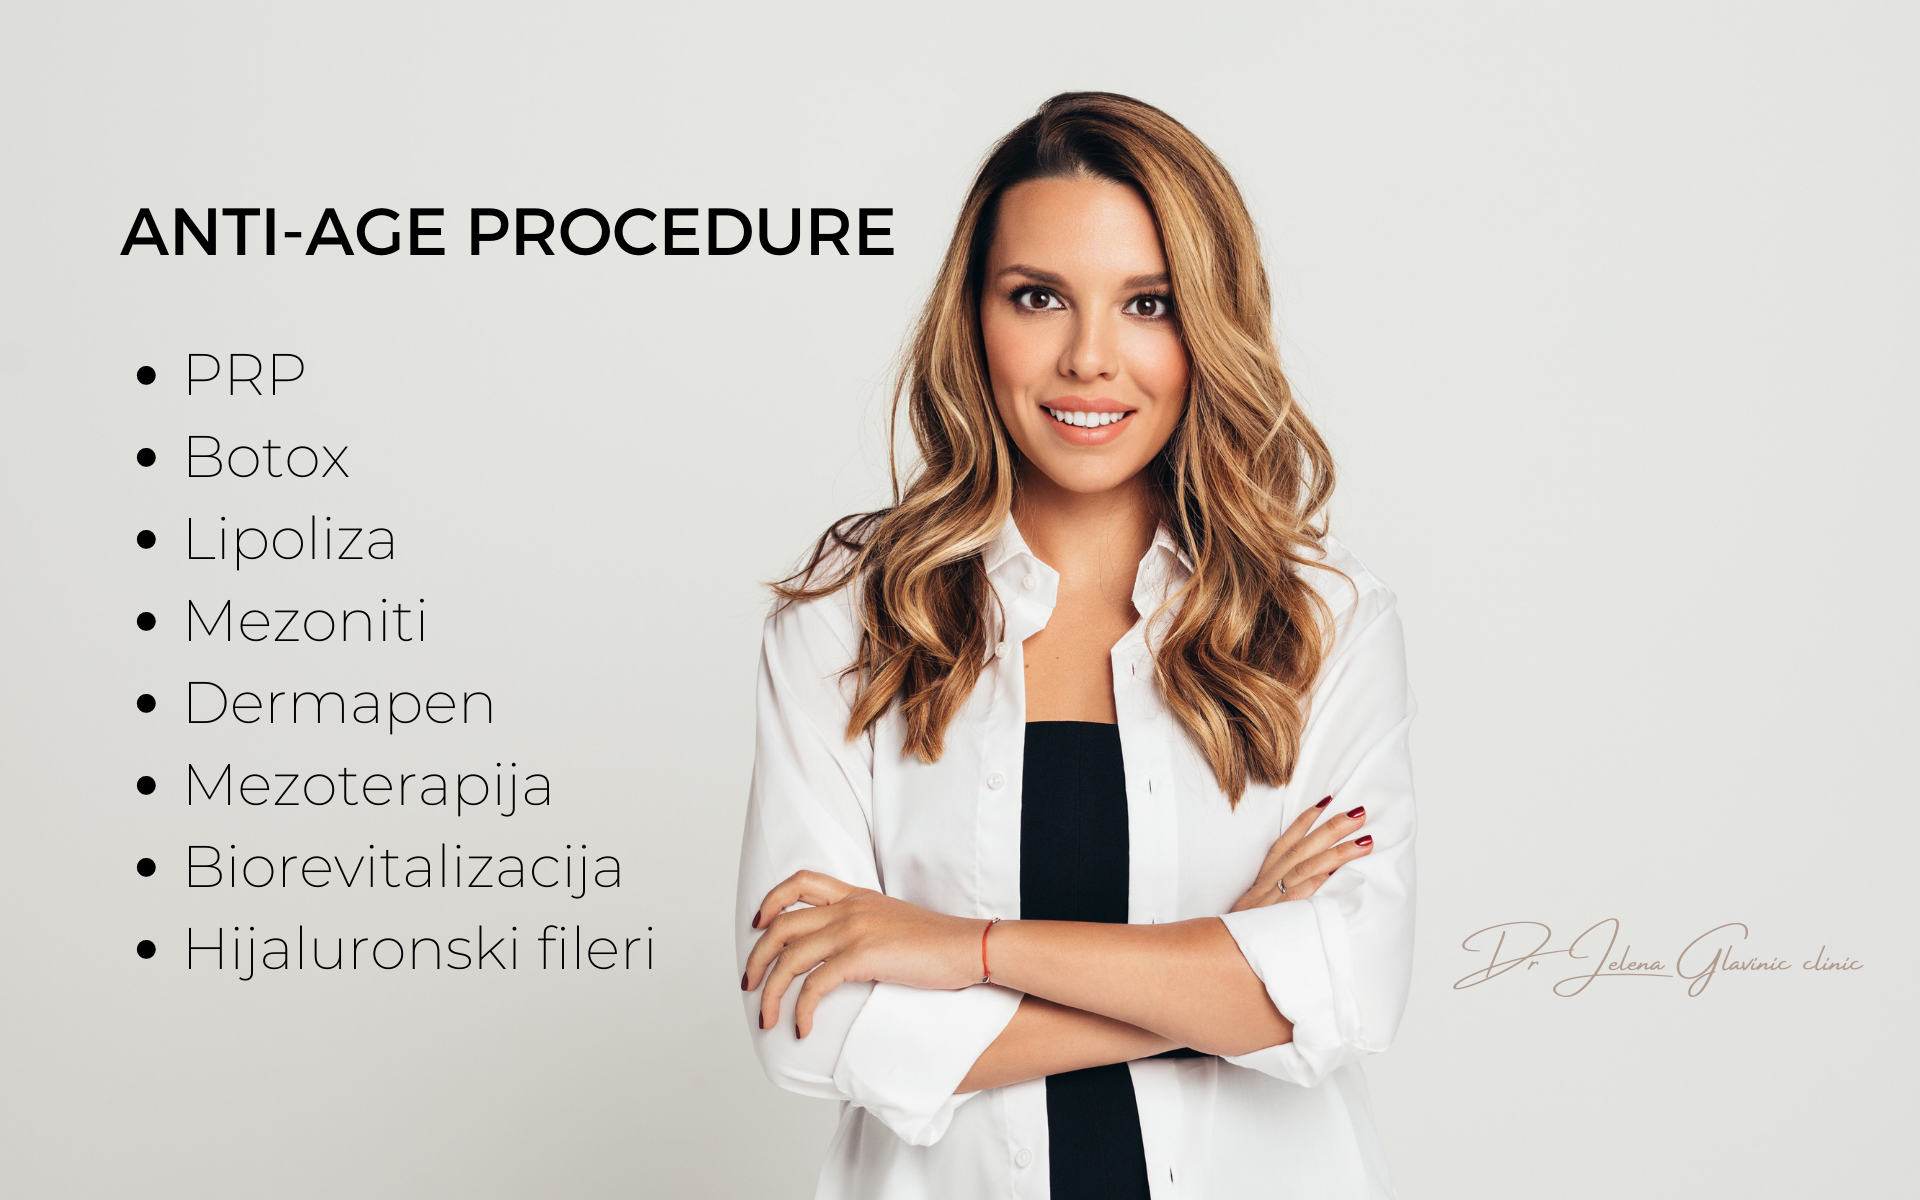 ANTI-AGE PROCEDURE